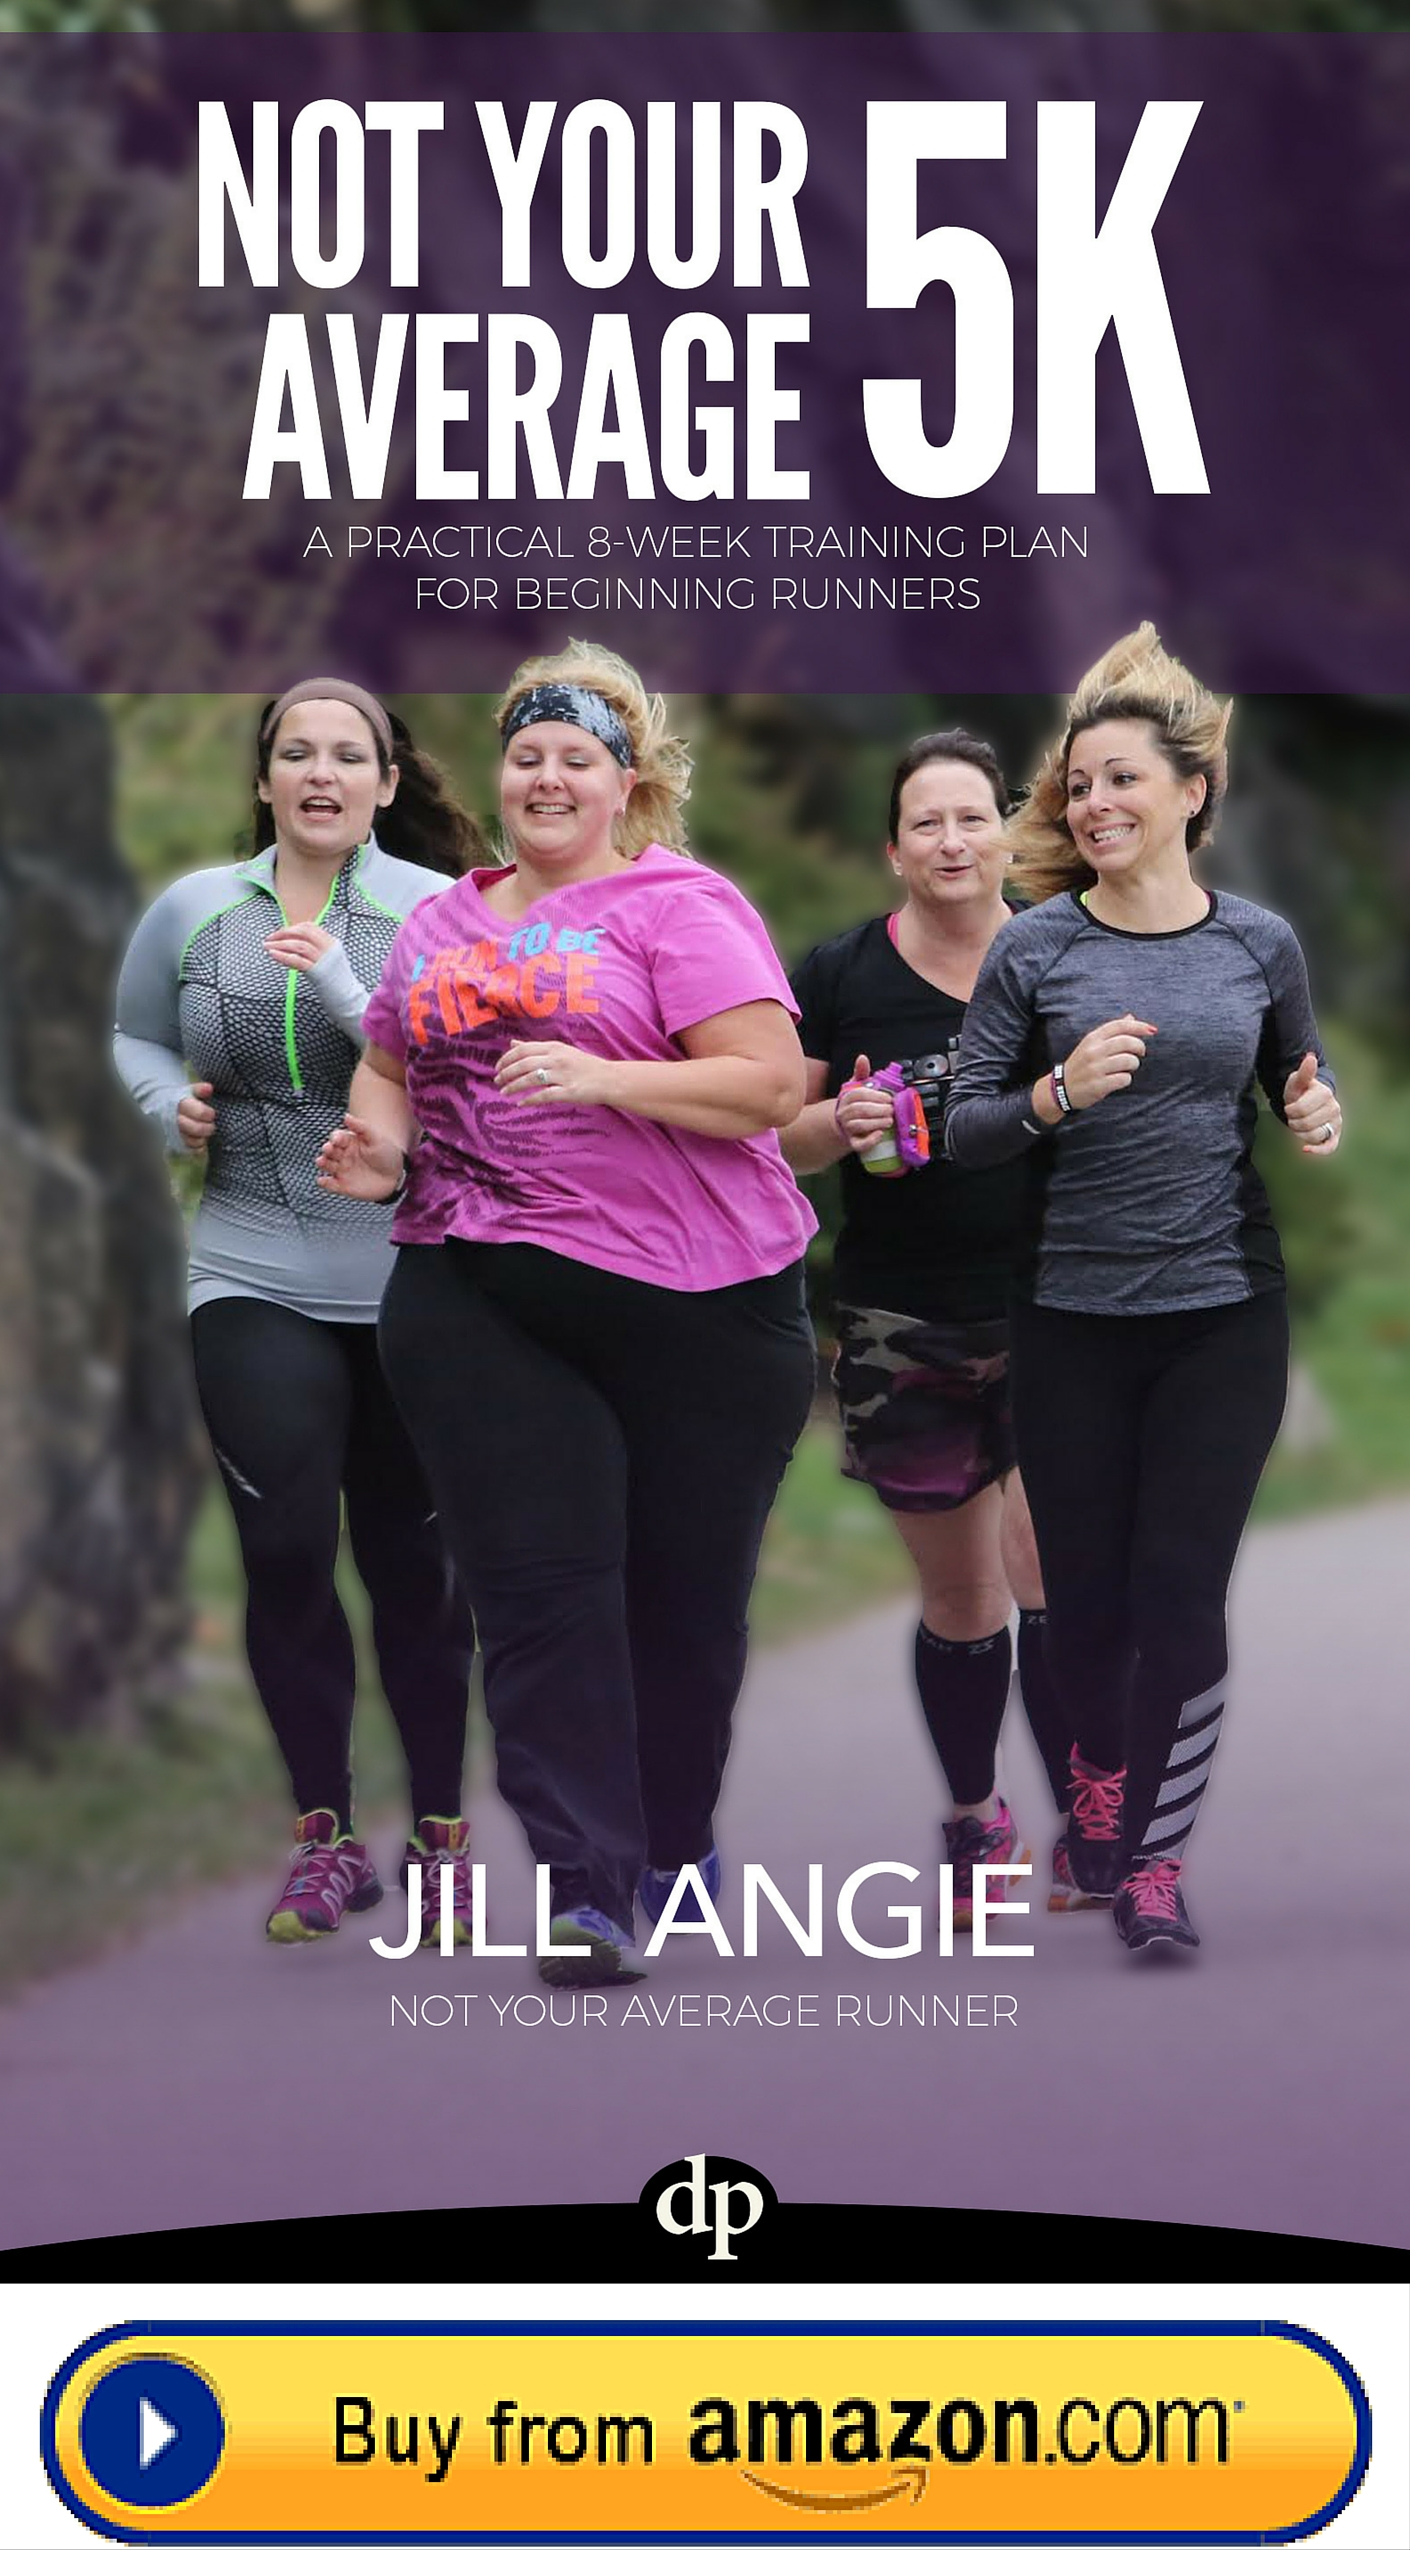 Not Your Average 5K book by Jill Angie - Not Your Average Runner